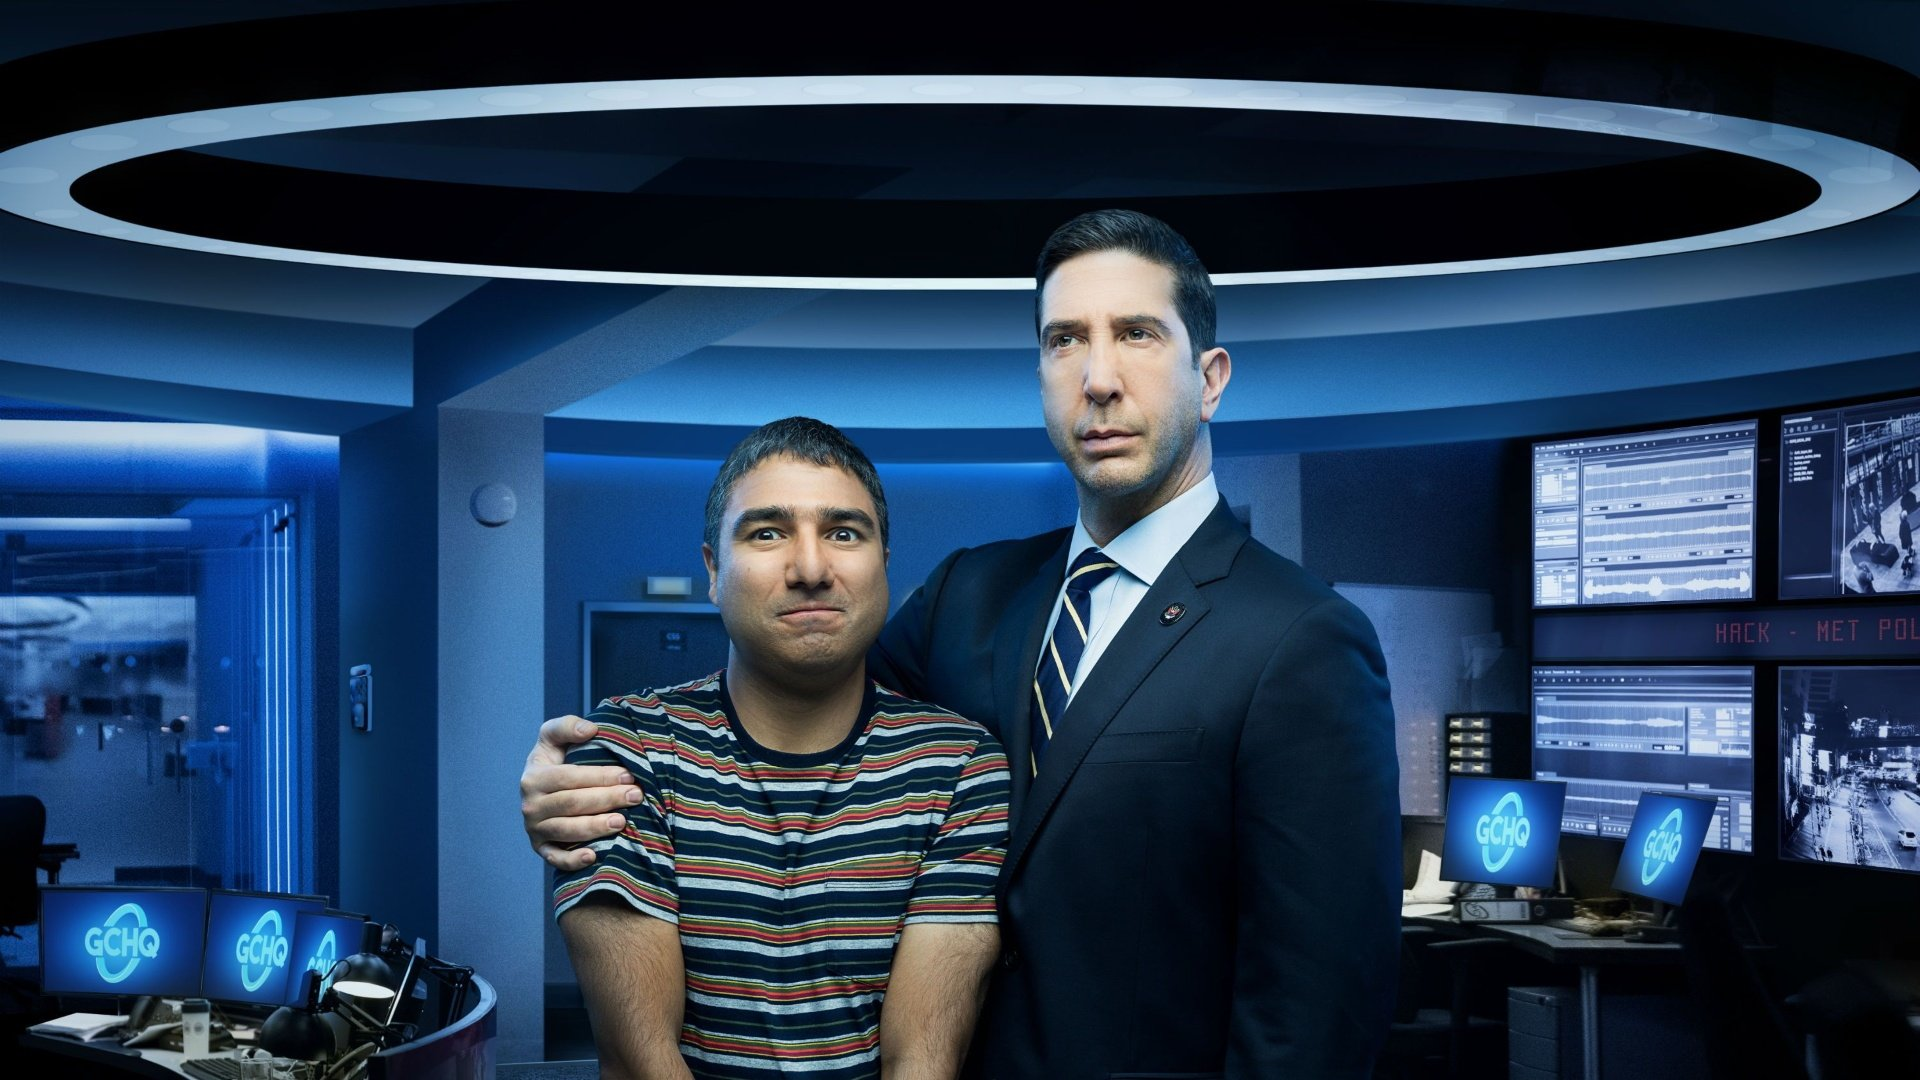 David Schwimmer Admits His New Show Intelligence is Propaganda for GCHQ